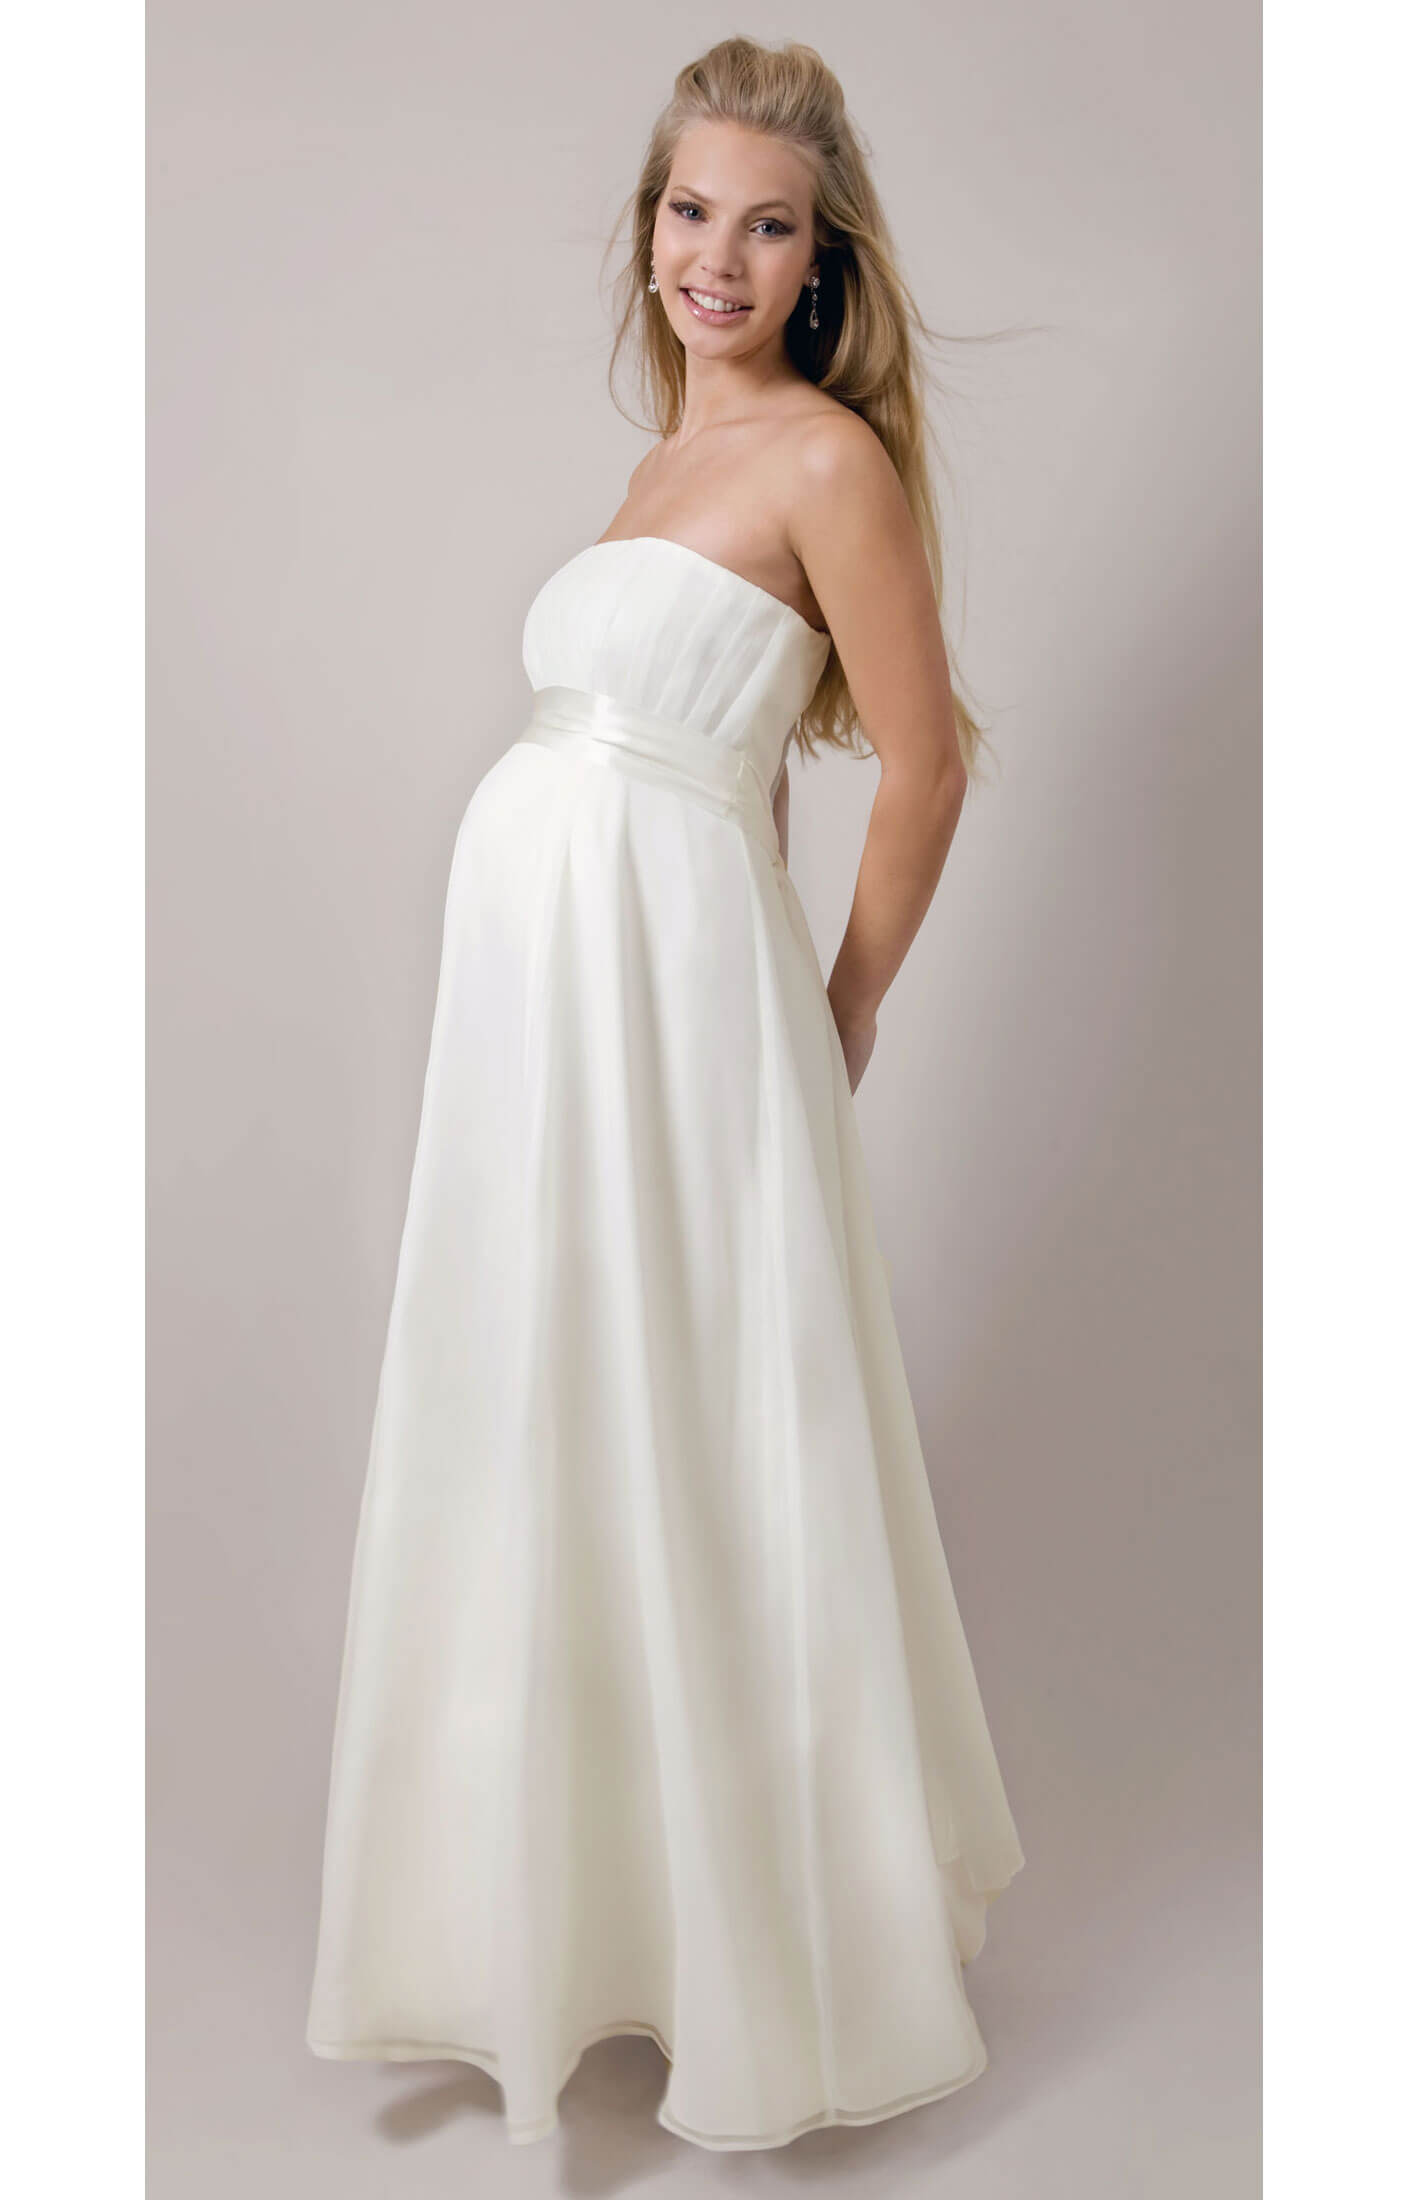 Athena maternity gown maternity wedding dresses evening for Maternity dresses for wedding party